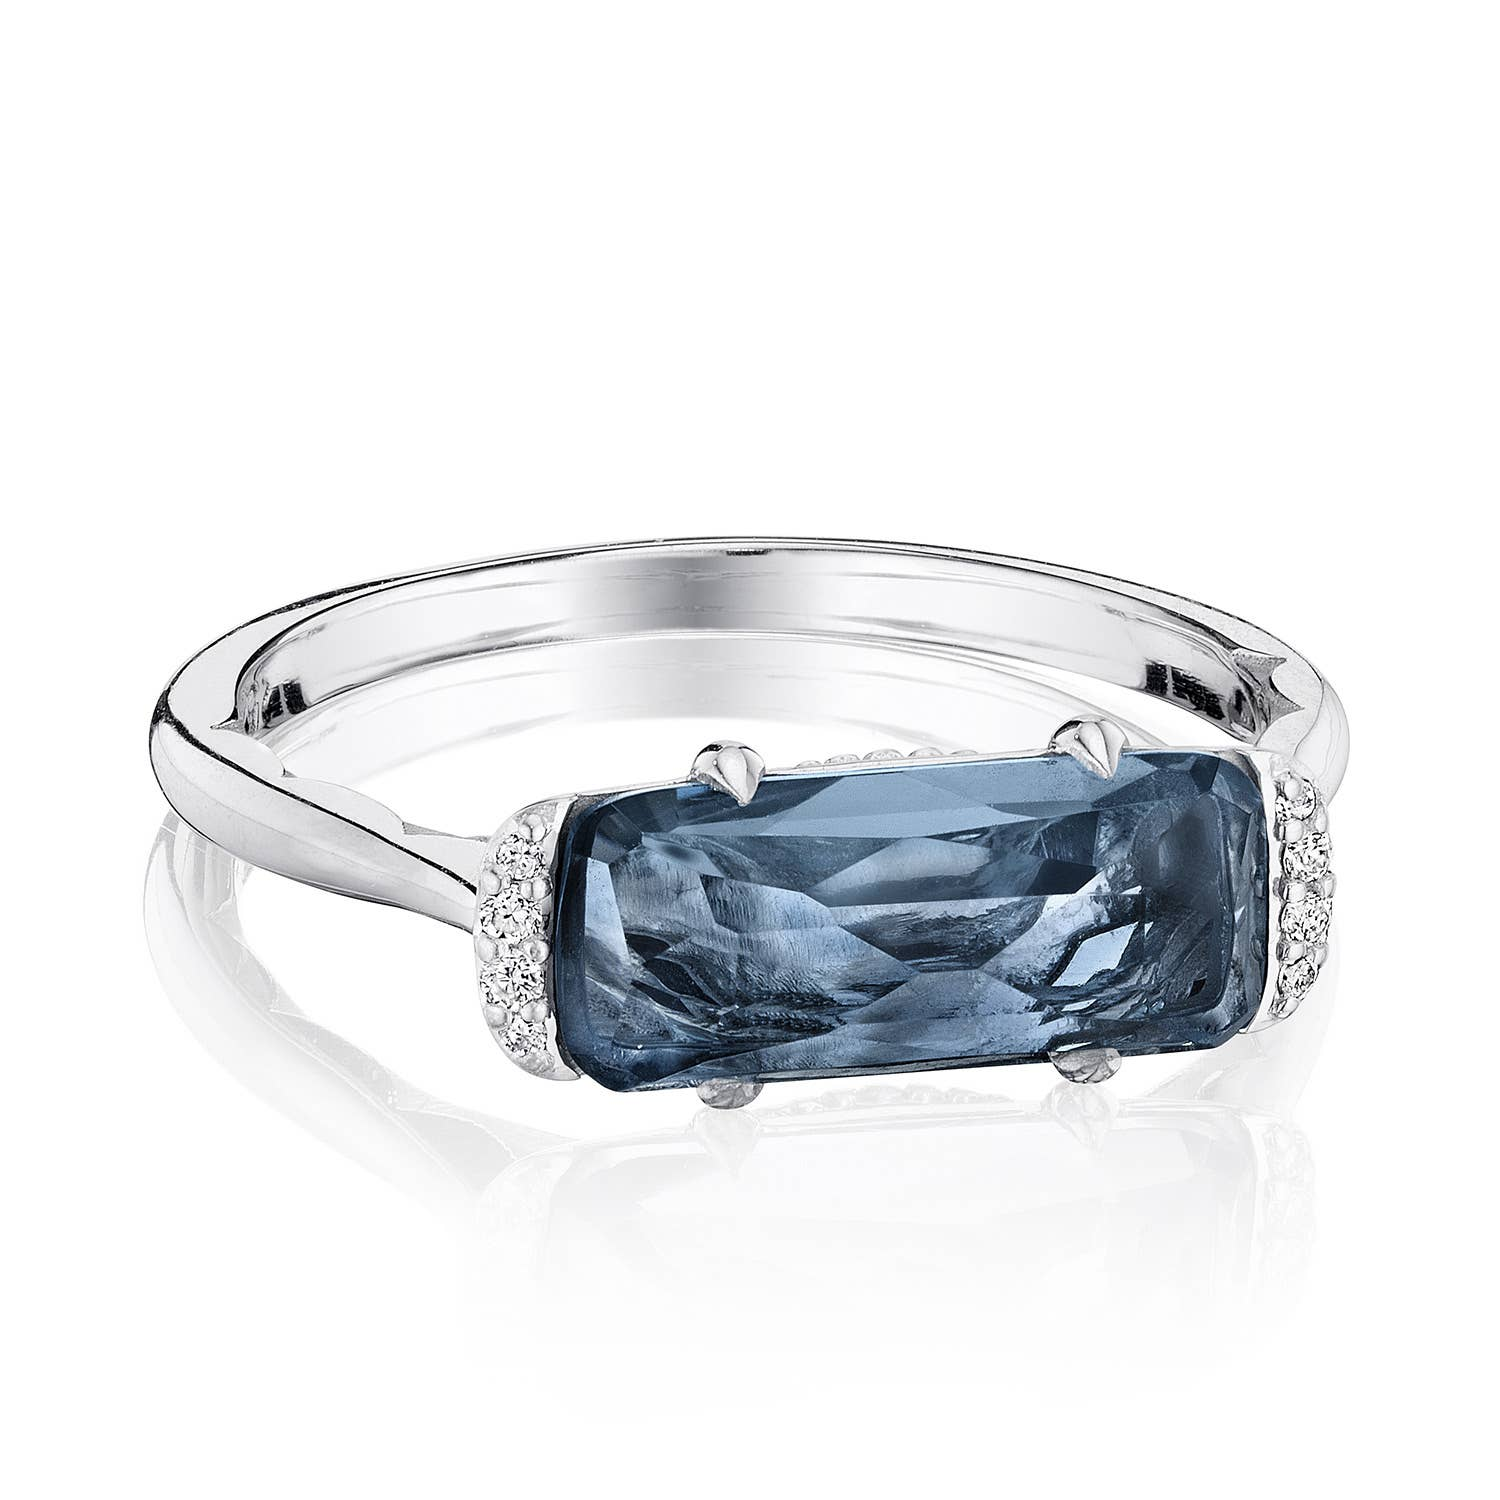 Details about  /Solitaire With Accents Trillion Cut Blue Topaz 925 Silver Engagement Ring